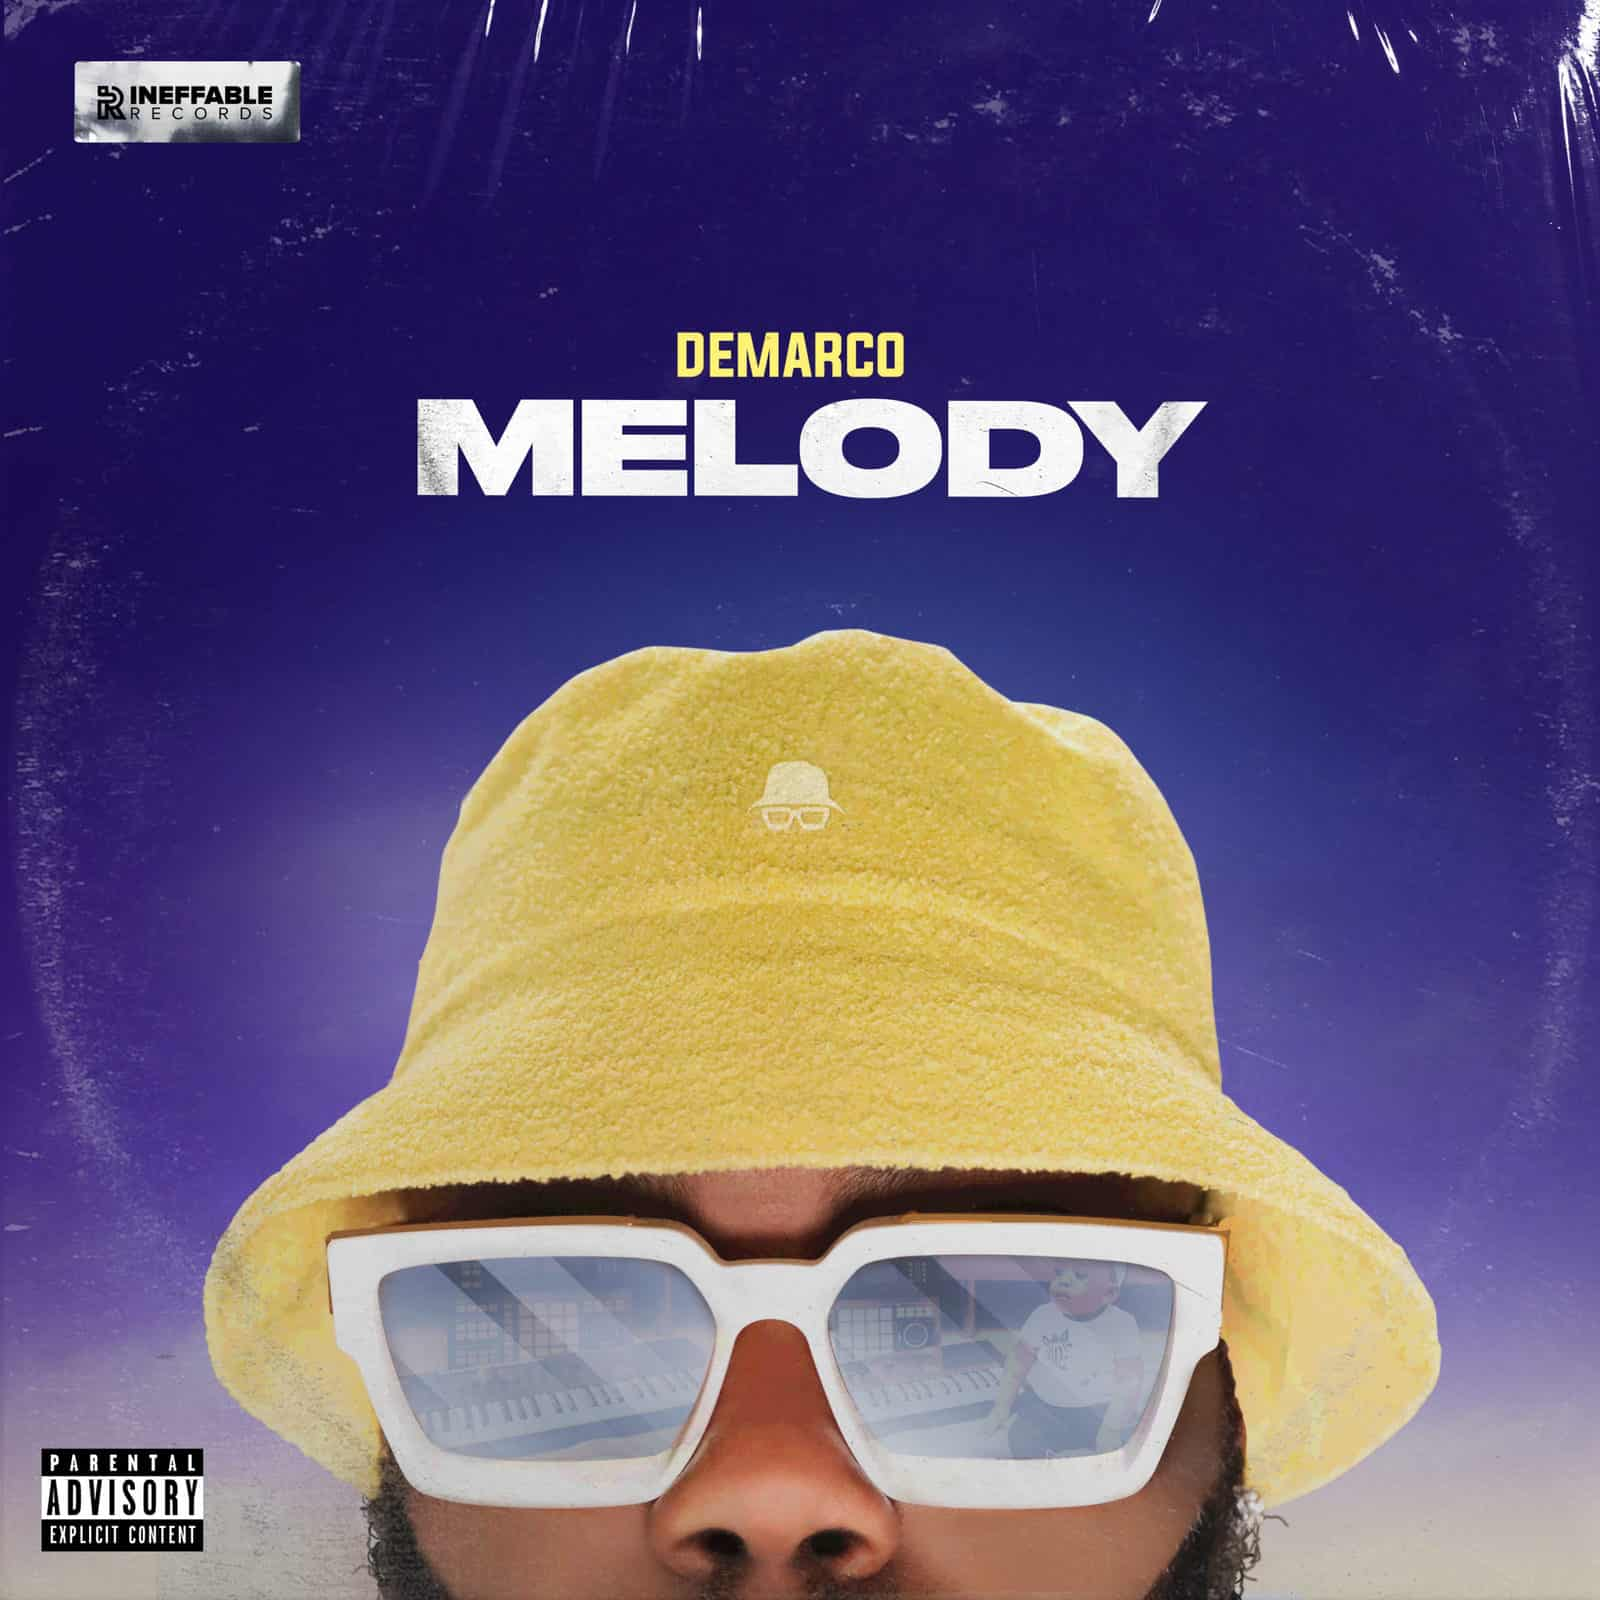 Demarco - Melody - Ineffable Records